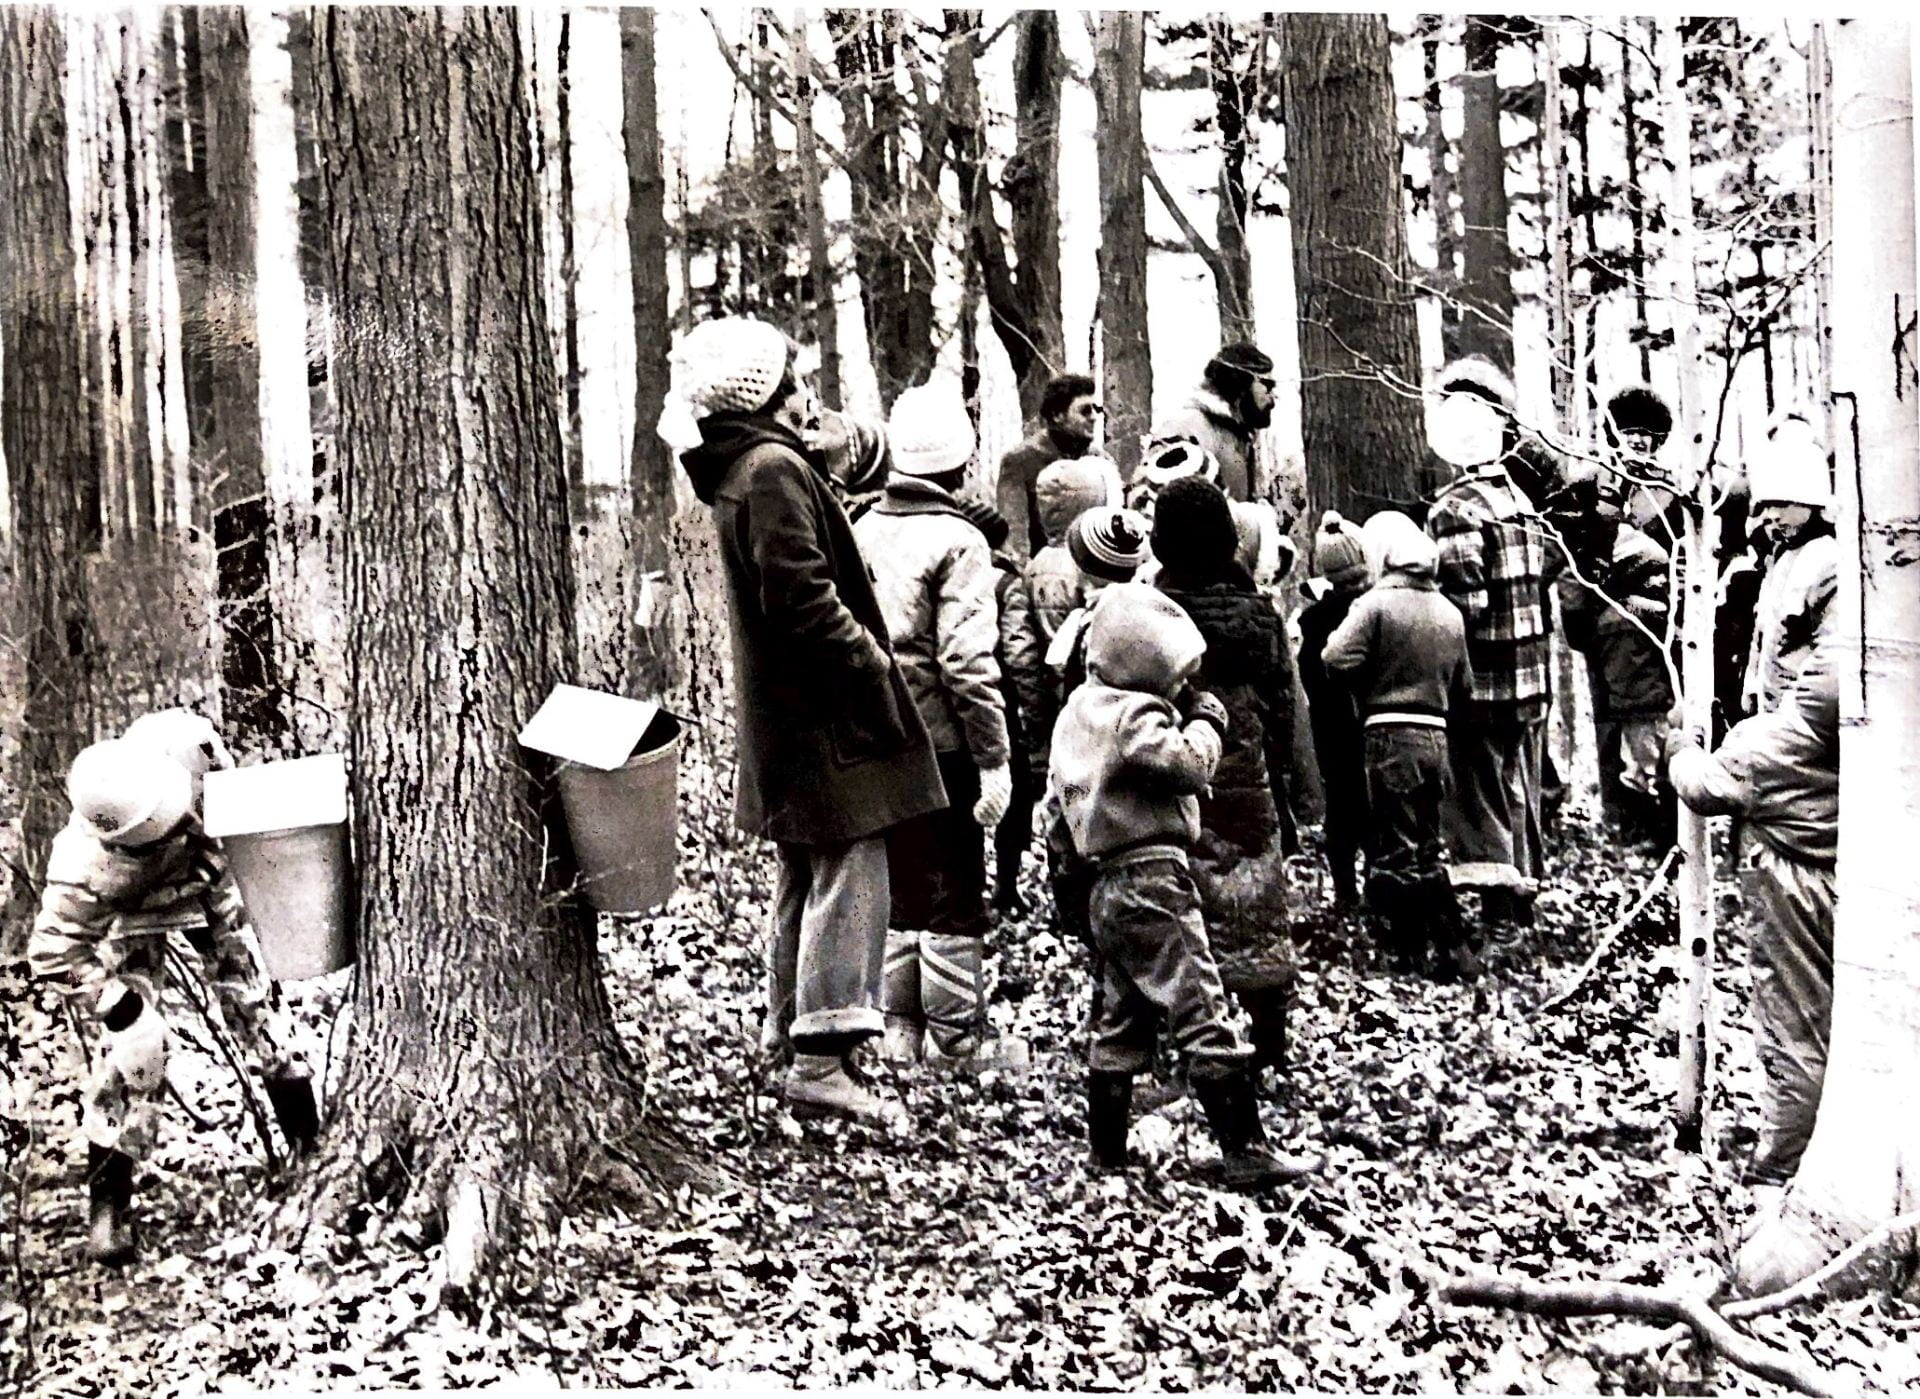 A group of adults and young children stand in the woods, bundled up for winter. There is no snow on the ground. The children look towards the group leaders, watching a maple syrup demonstration. On one tree being the group, two maple syrup gathering buckets are tapped to the tree trunk. A young child leans over, closely looking at the contents of the bucket.